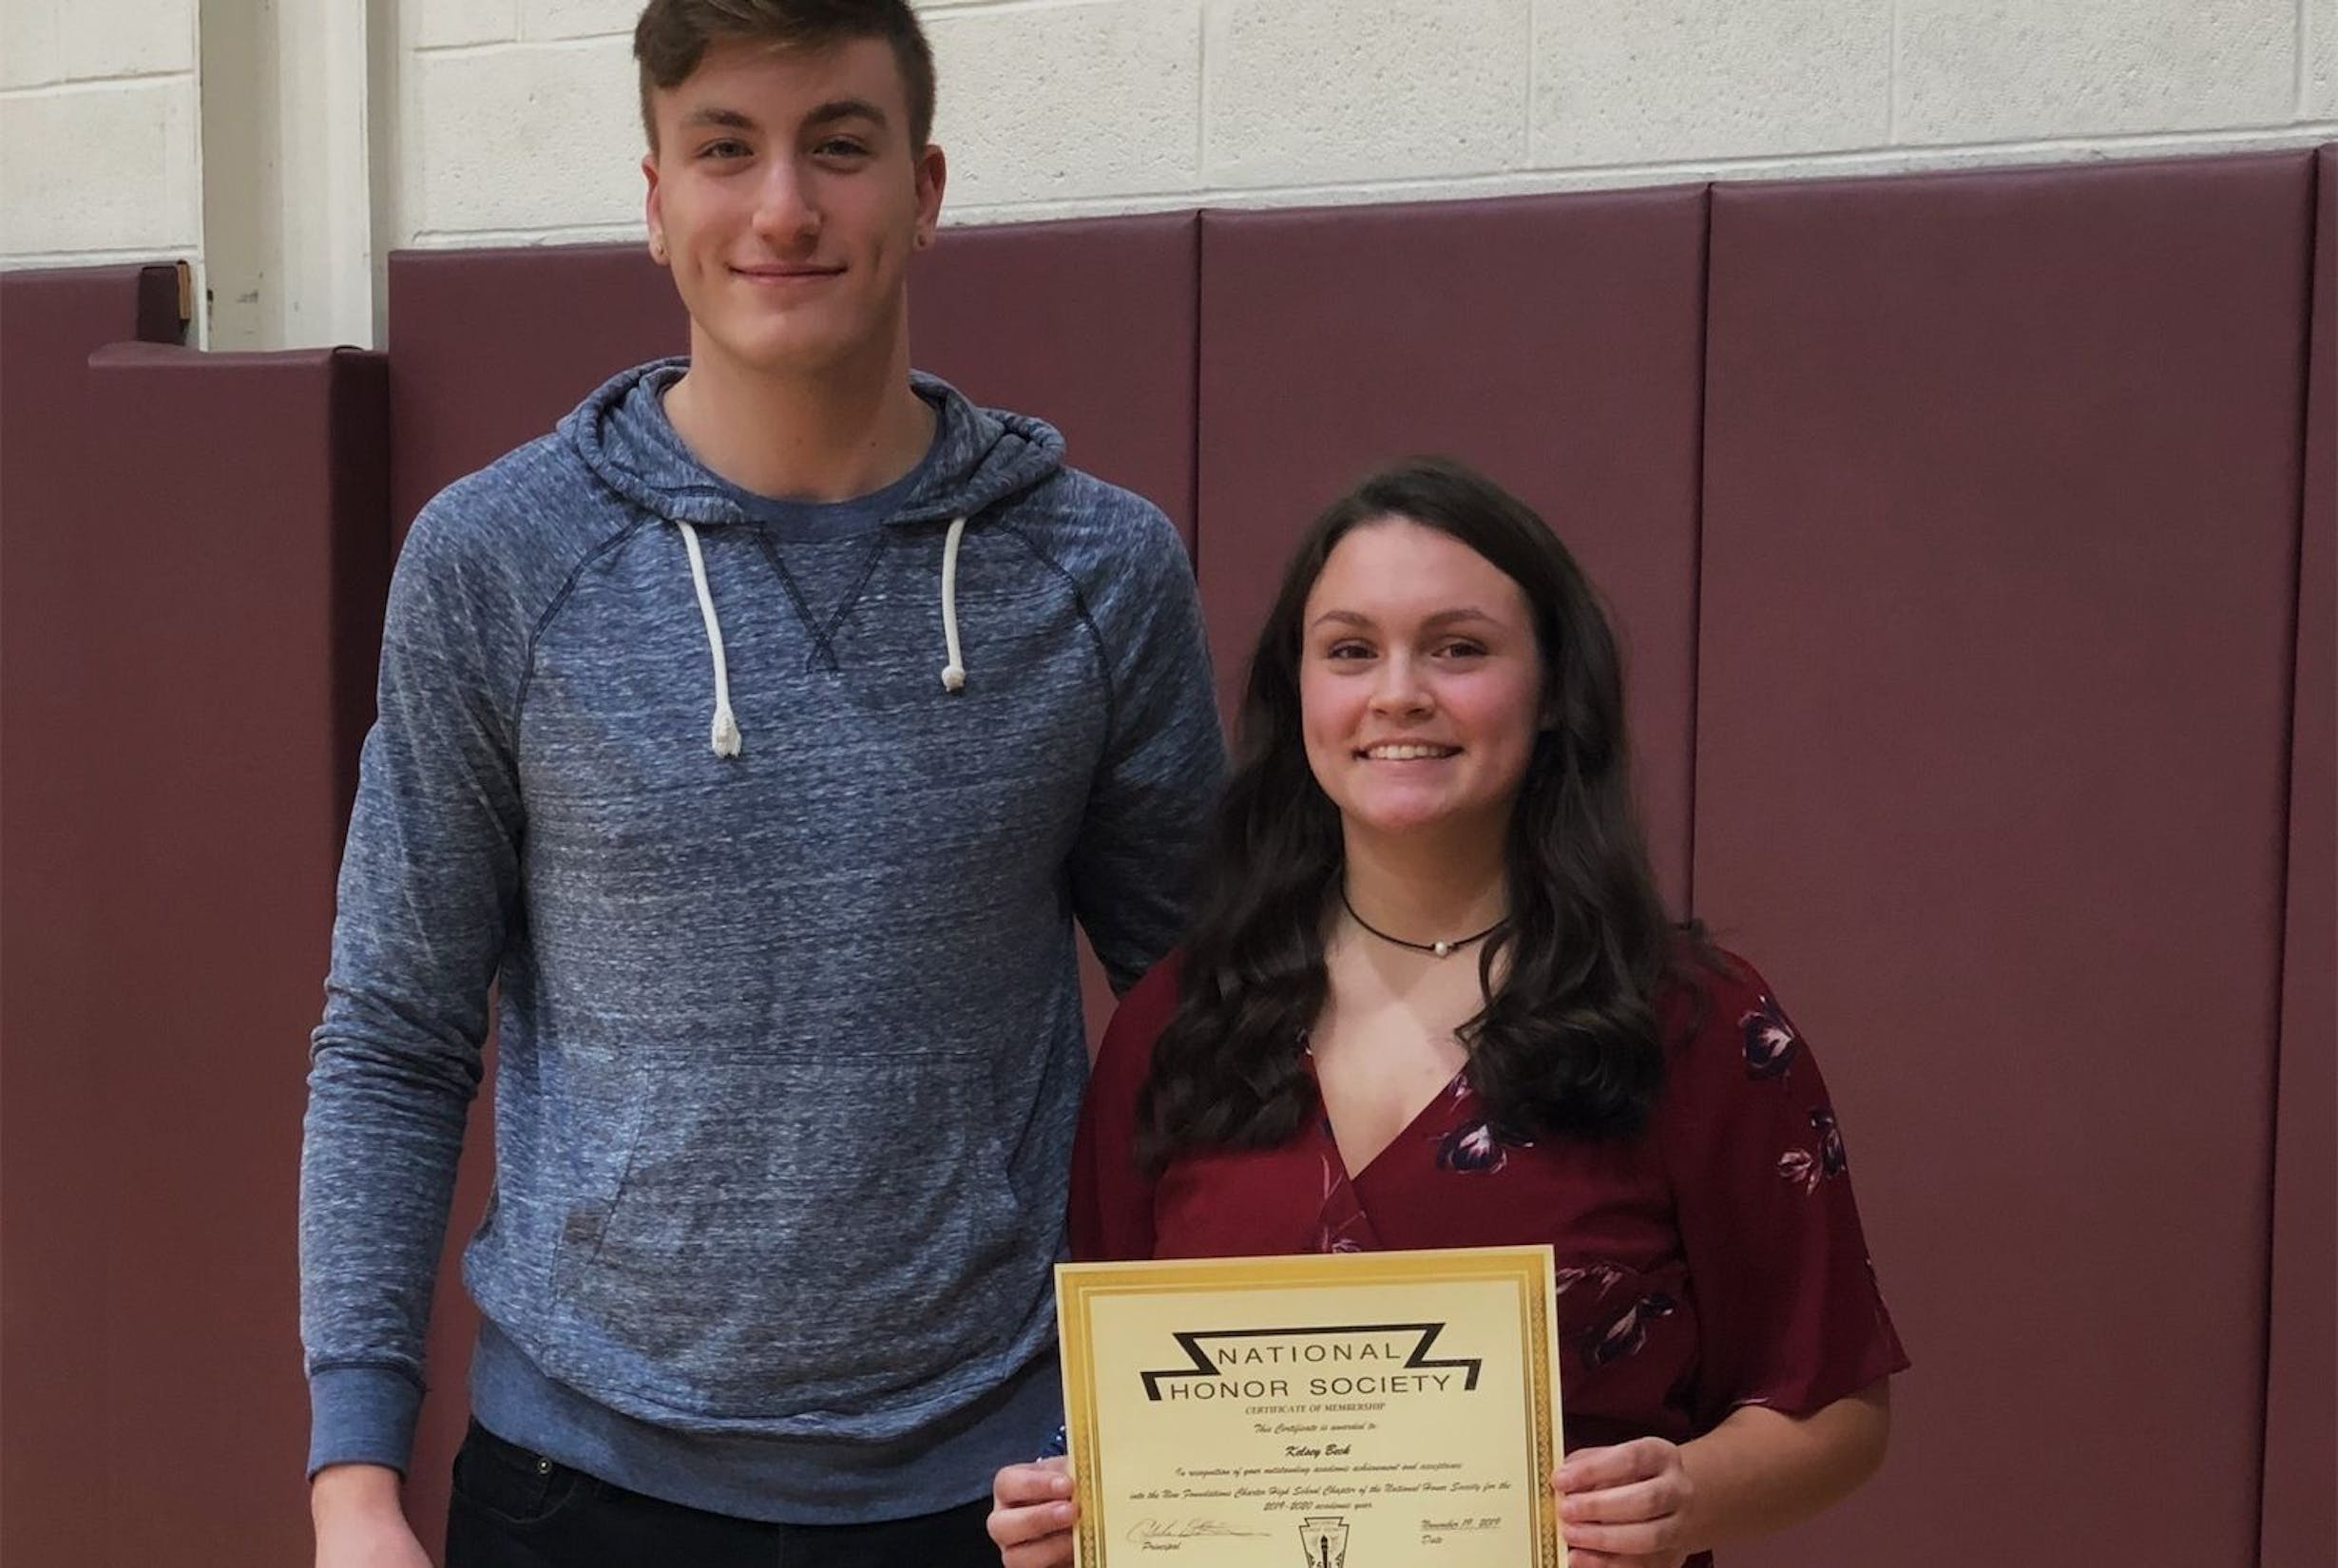 A male and female student smile while holding up a certificate